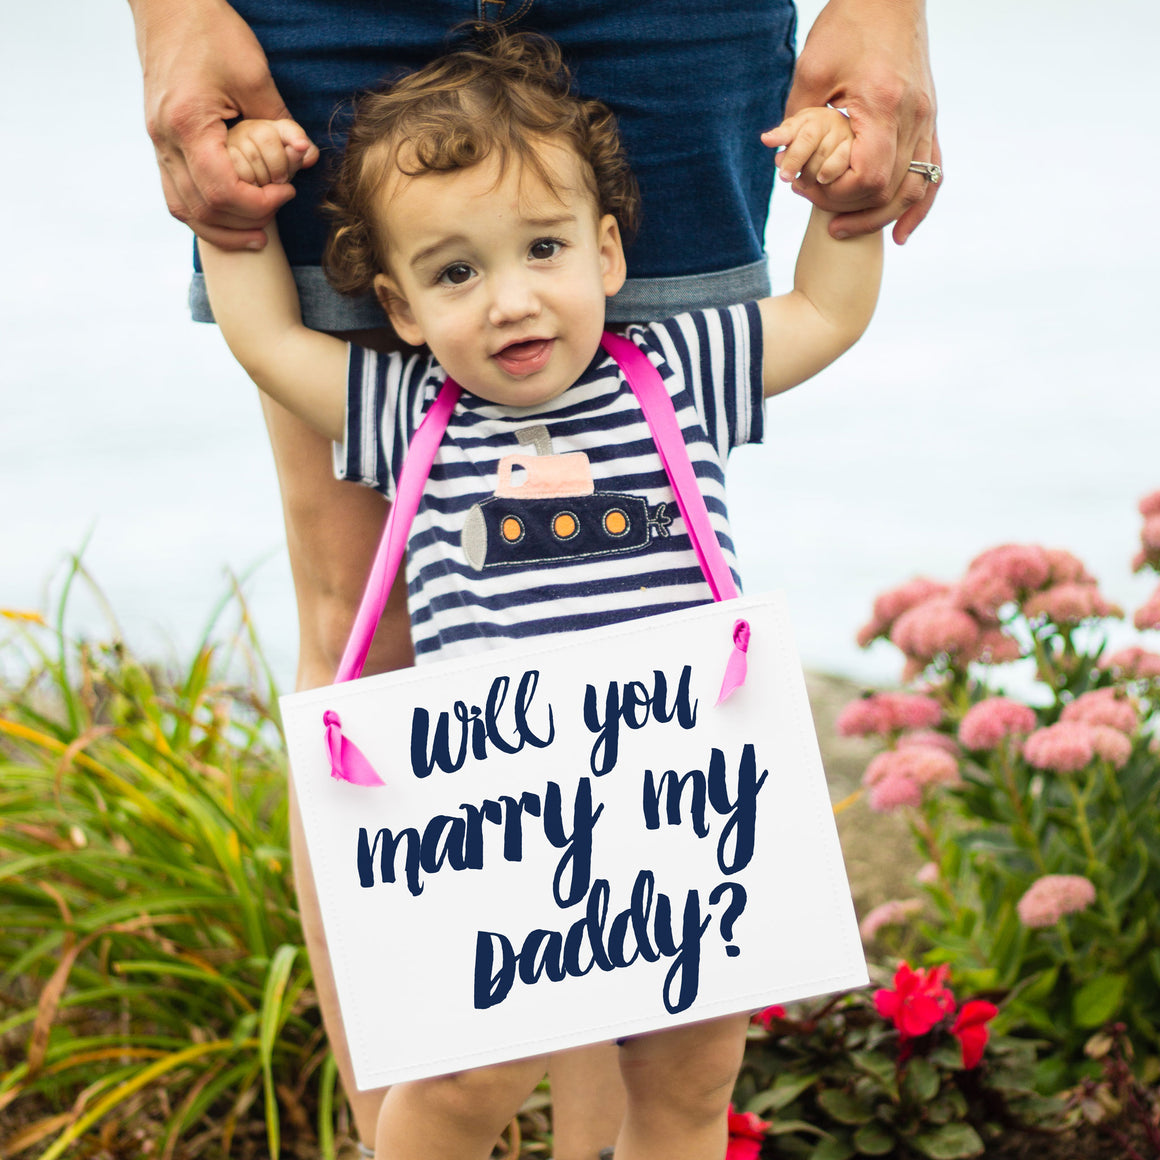 Proposal Banner for Daughter or Son | Will You Marry My Daddy?